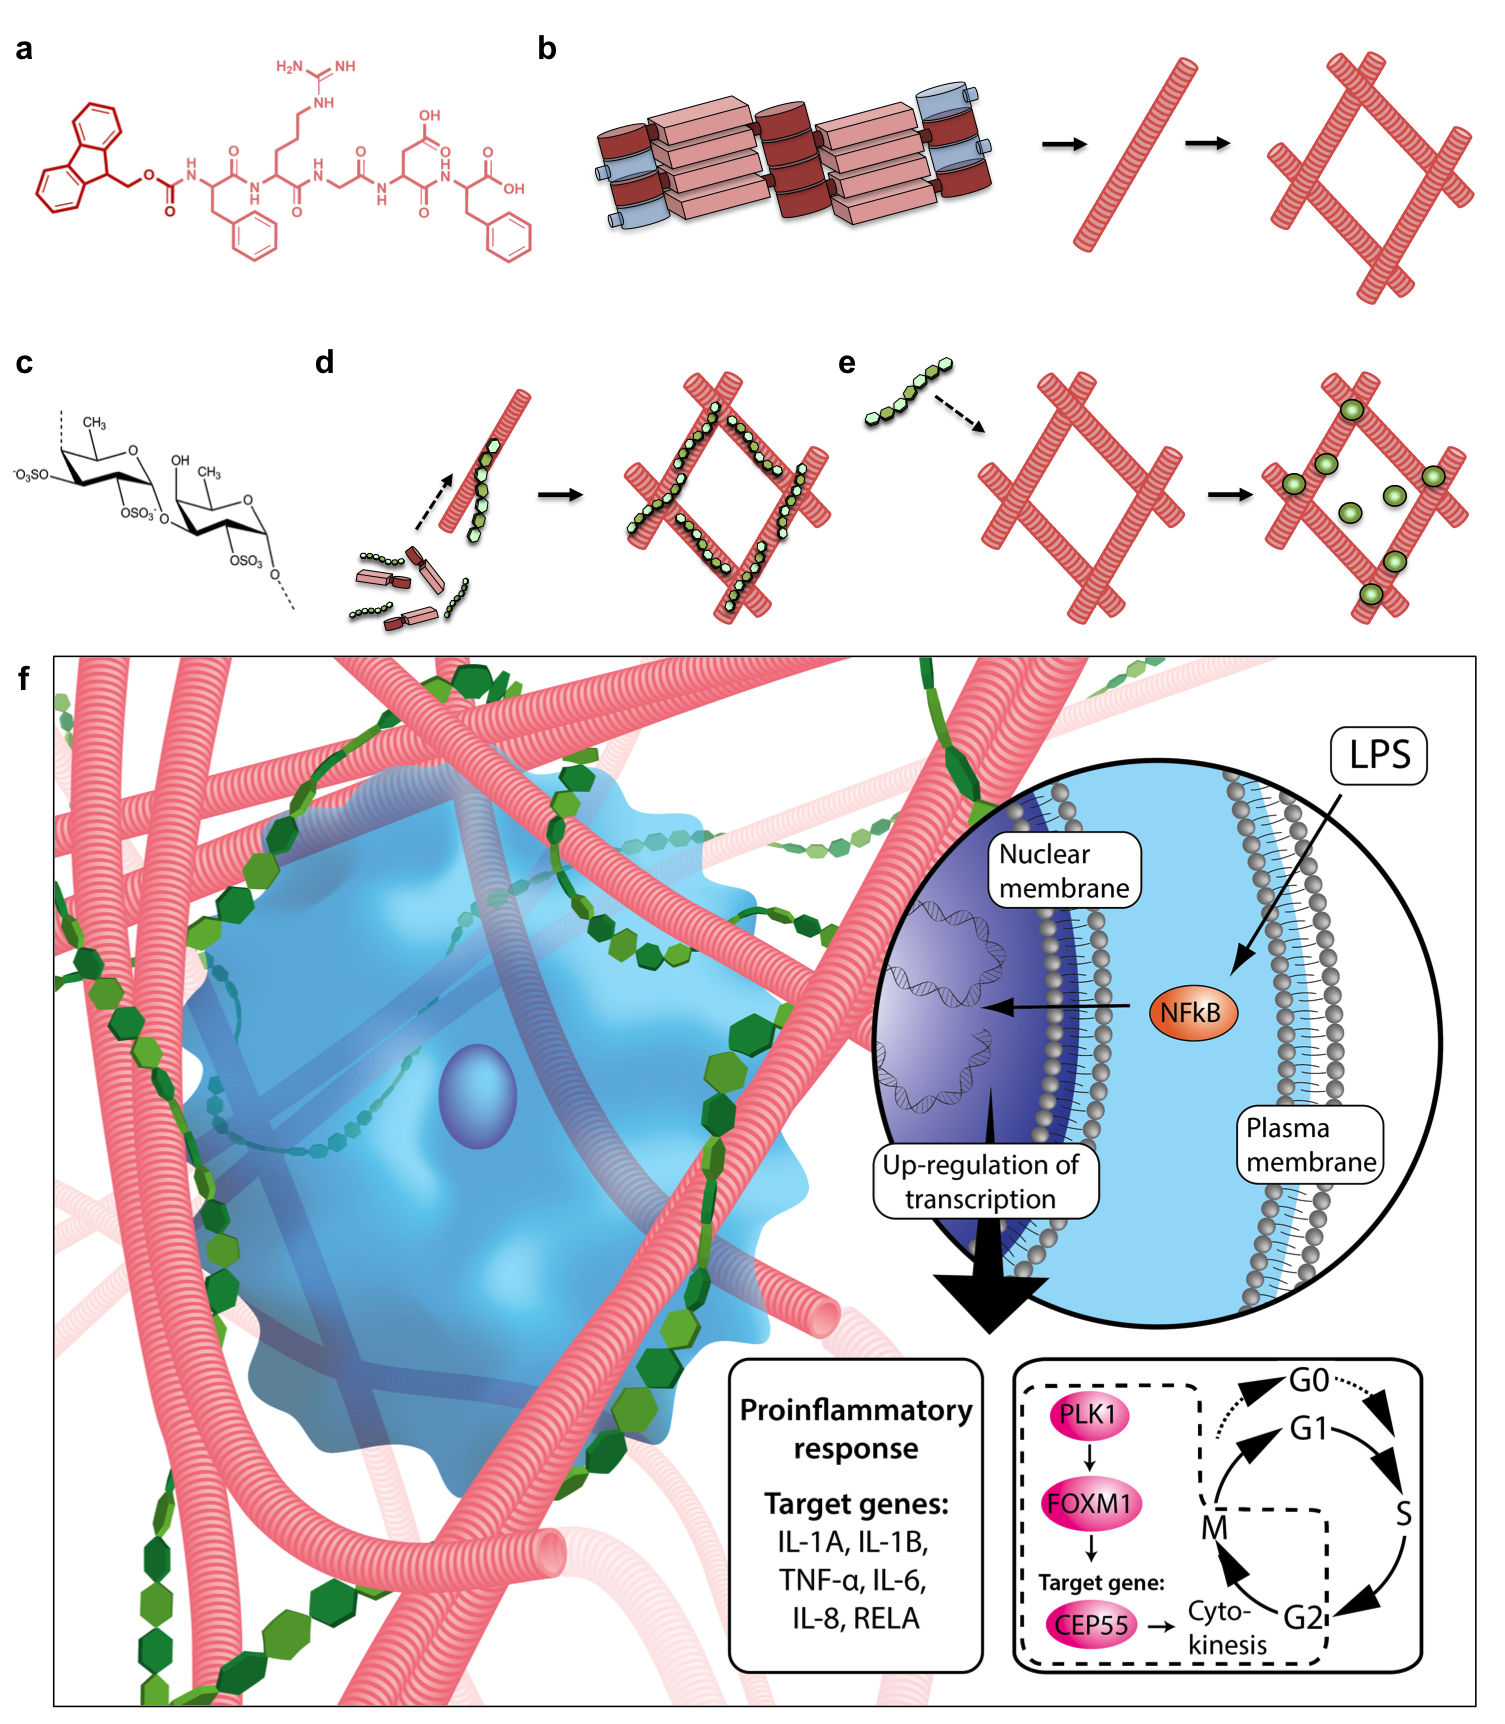 Frontiers | Self-assembled multifunctional nanogel reduces